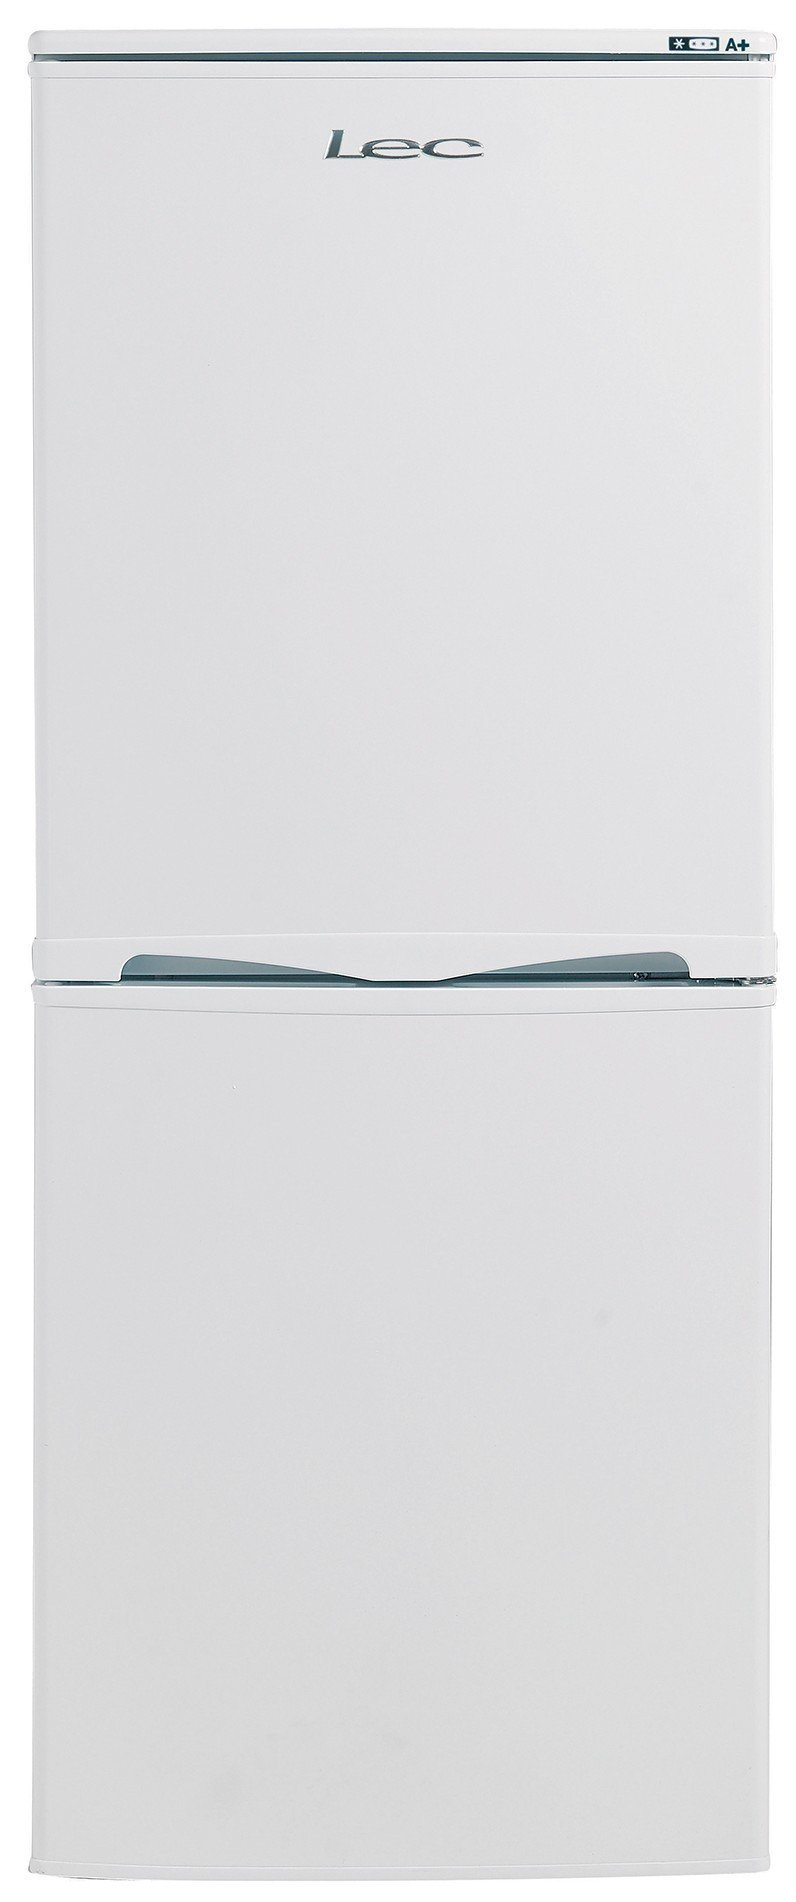 Lec T5039W Freestanding Fridge Freezer, 50cm Wide In White